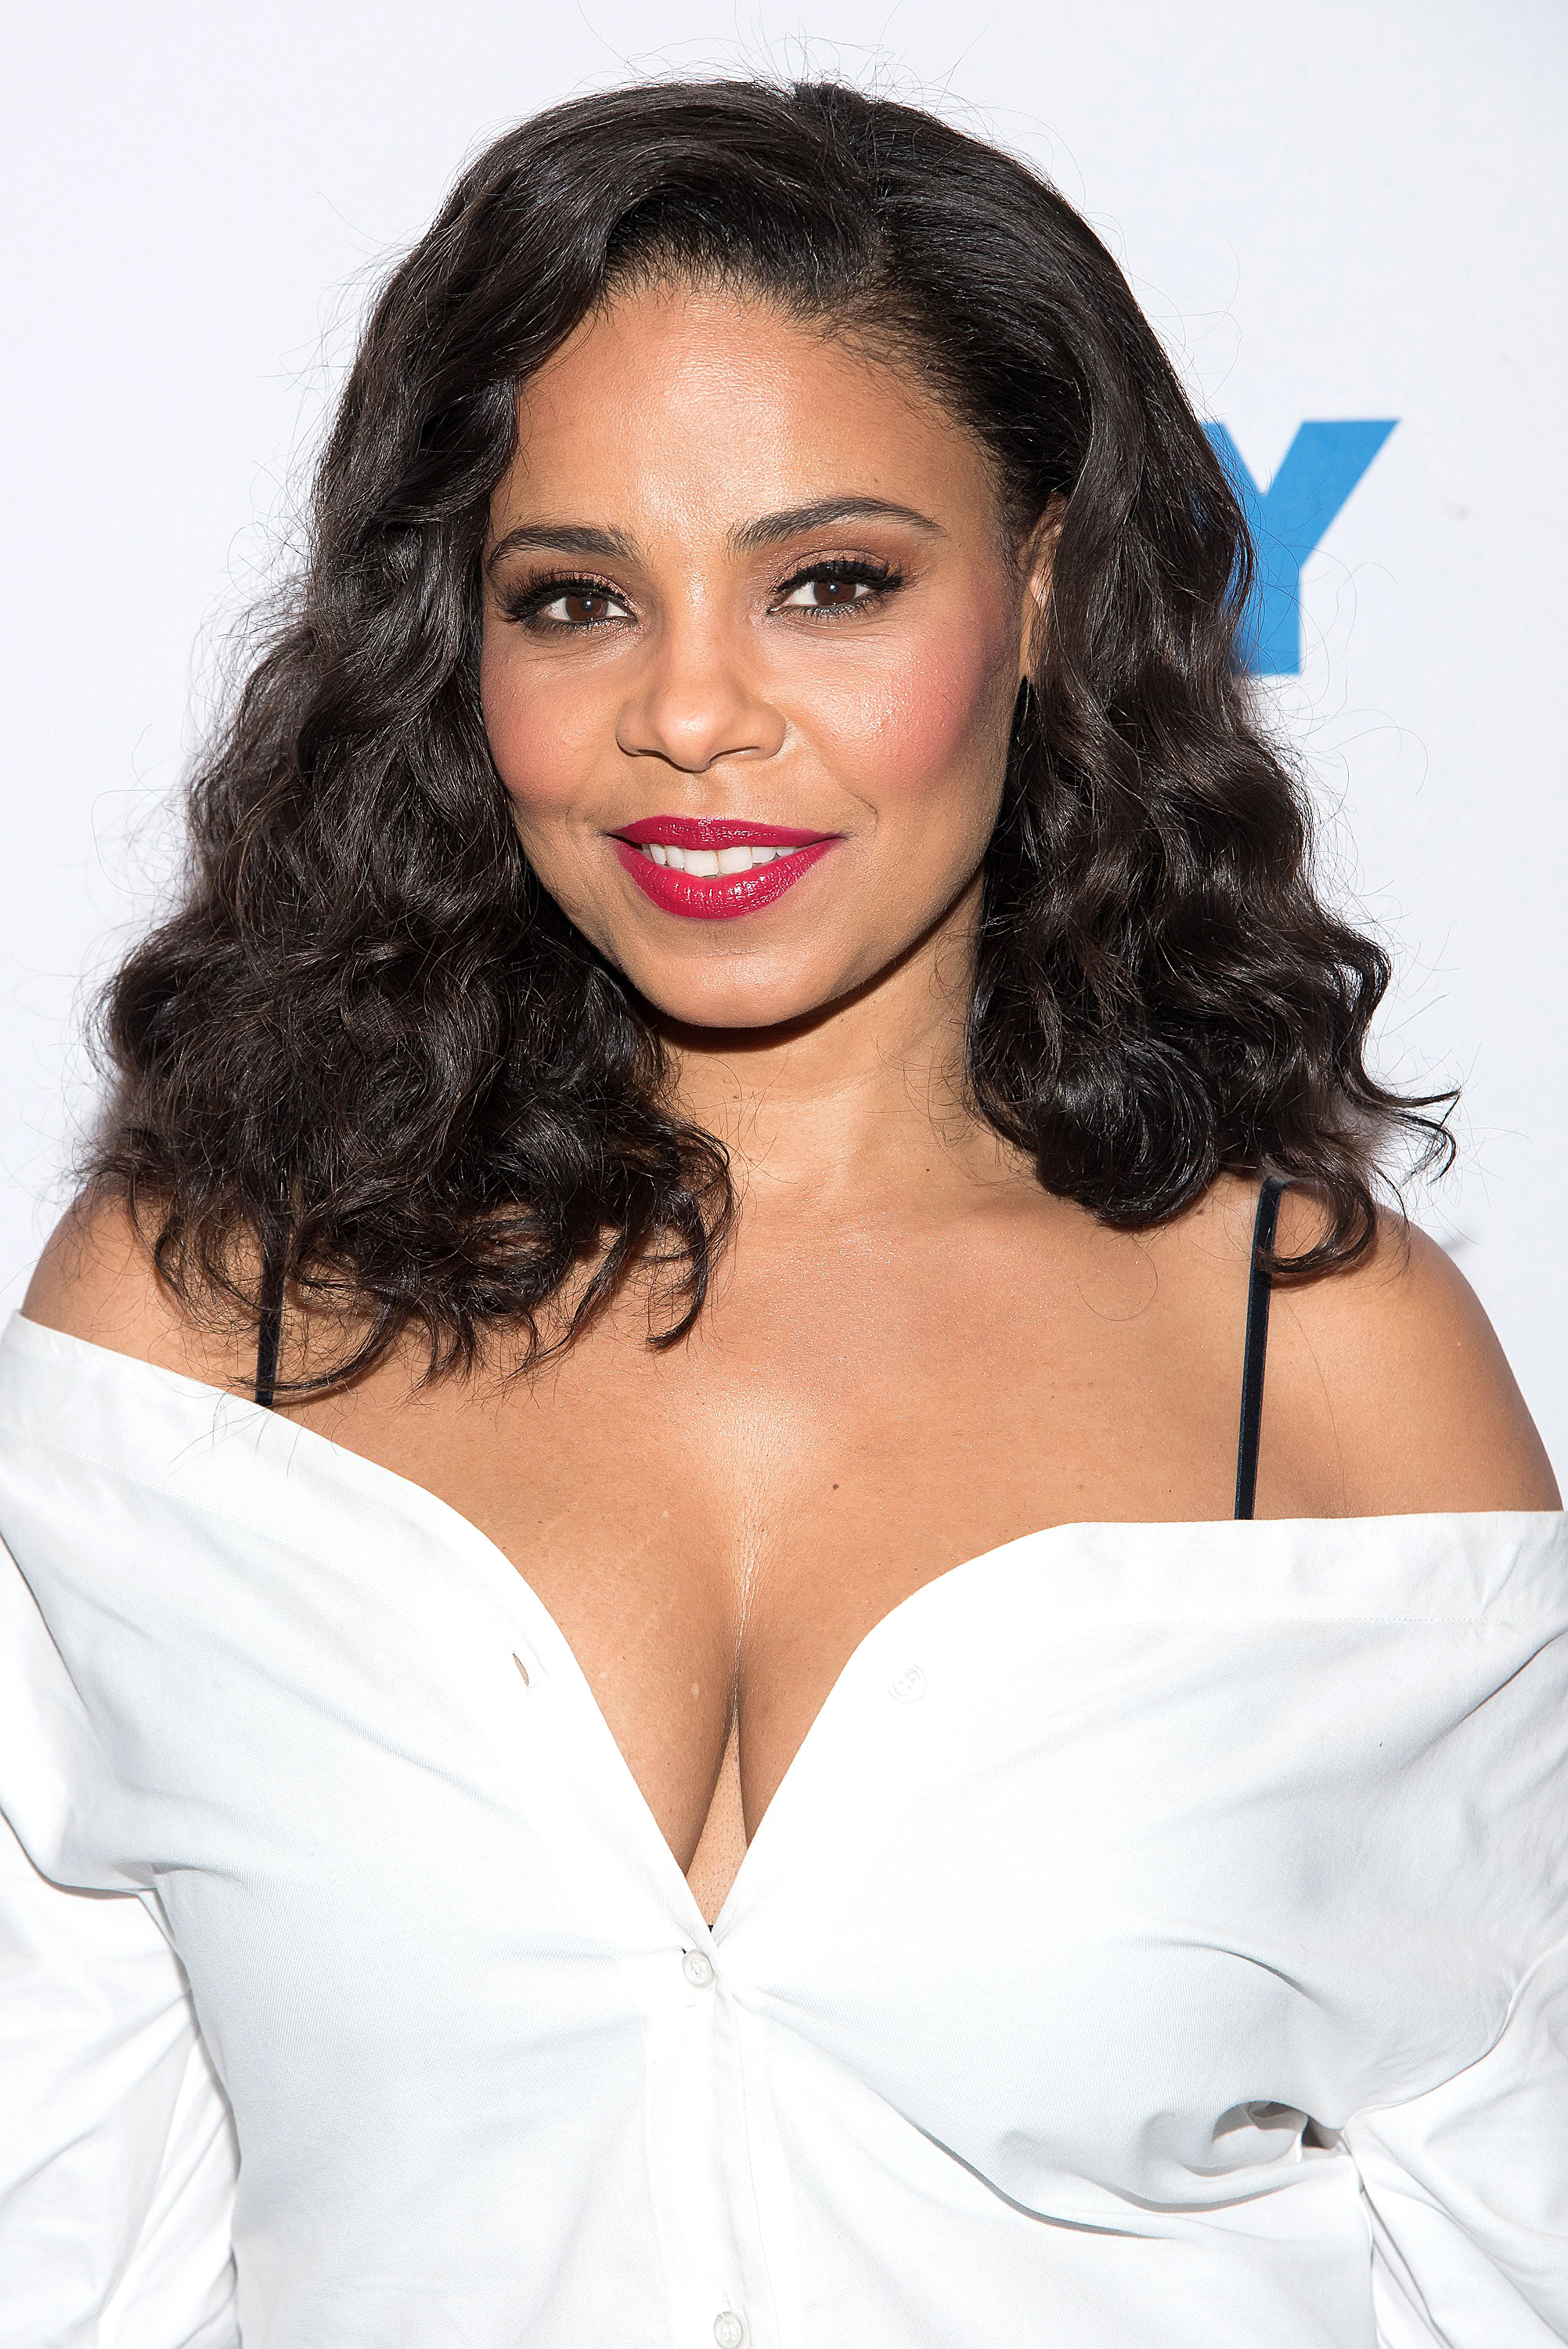 """Every Celeb Appearing on the New 'Twilight Zone' Sanaa Lathan - The Affair 's Sanaa Lathan stars in episode 3, titled """"Rewind,"""" playing an attorney named Nina, who is taking her son to a historically black college when she faces a life-threatening situation with a Virginia state trooper."""